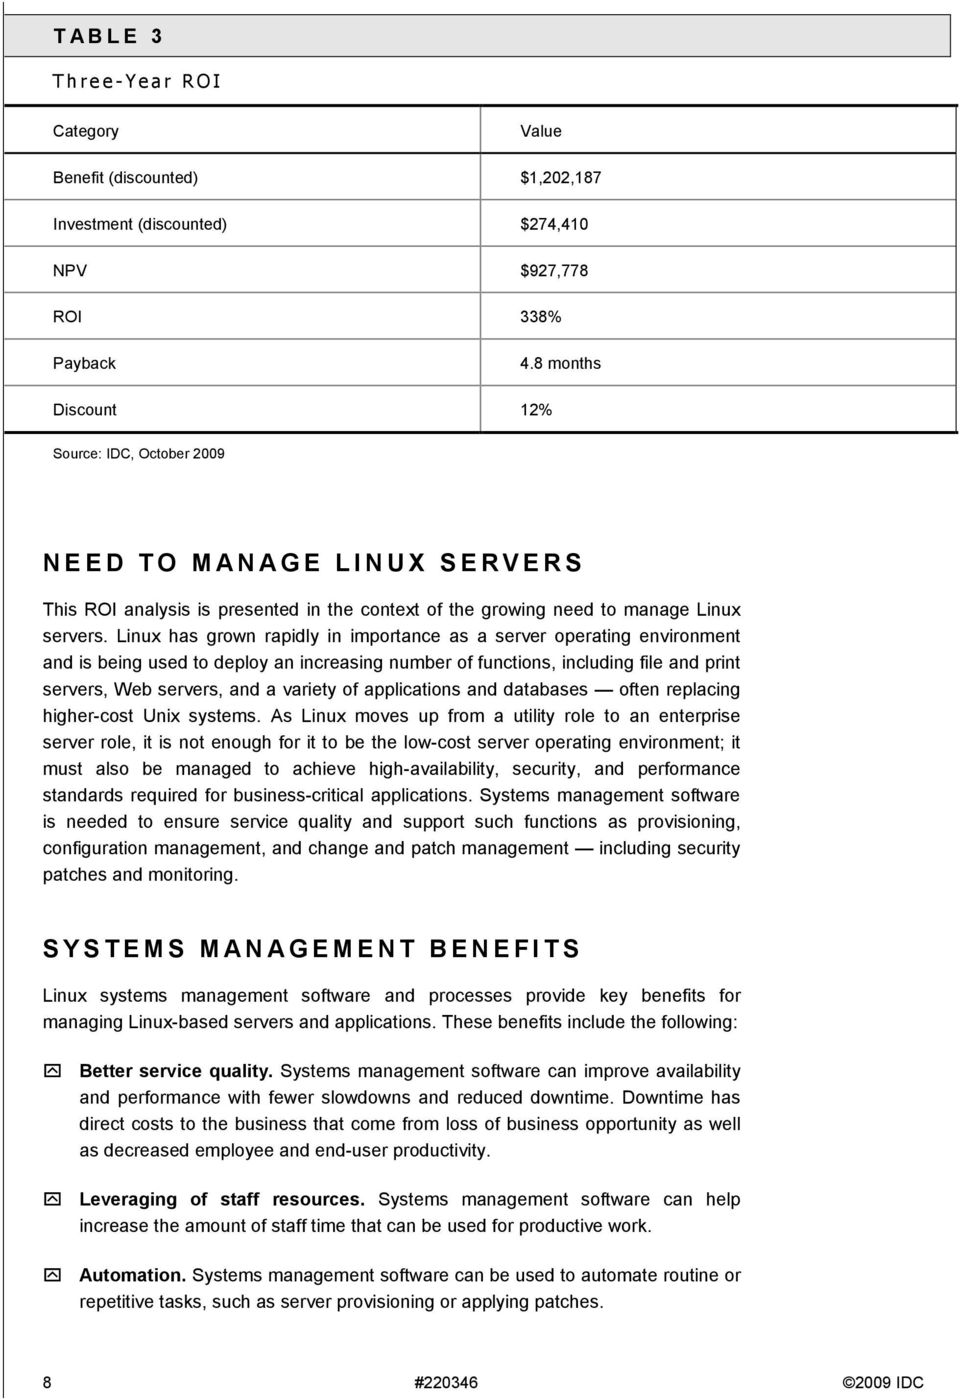 Linux has grown rapidly in importance as a server operating environment and is being used to deploy an increasing number of functions, including file and print servers, Web servers, and a variety of